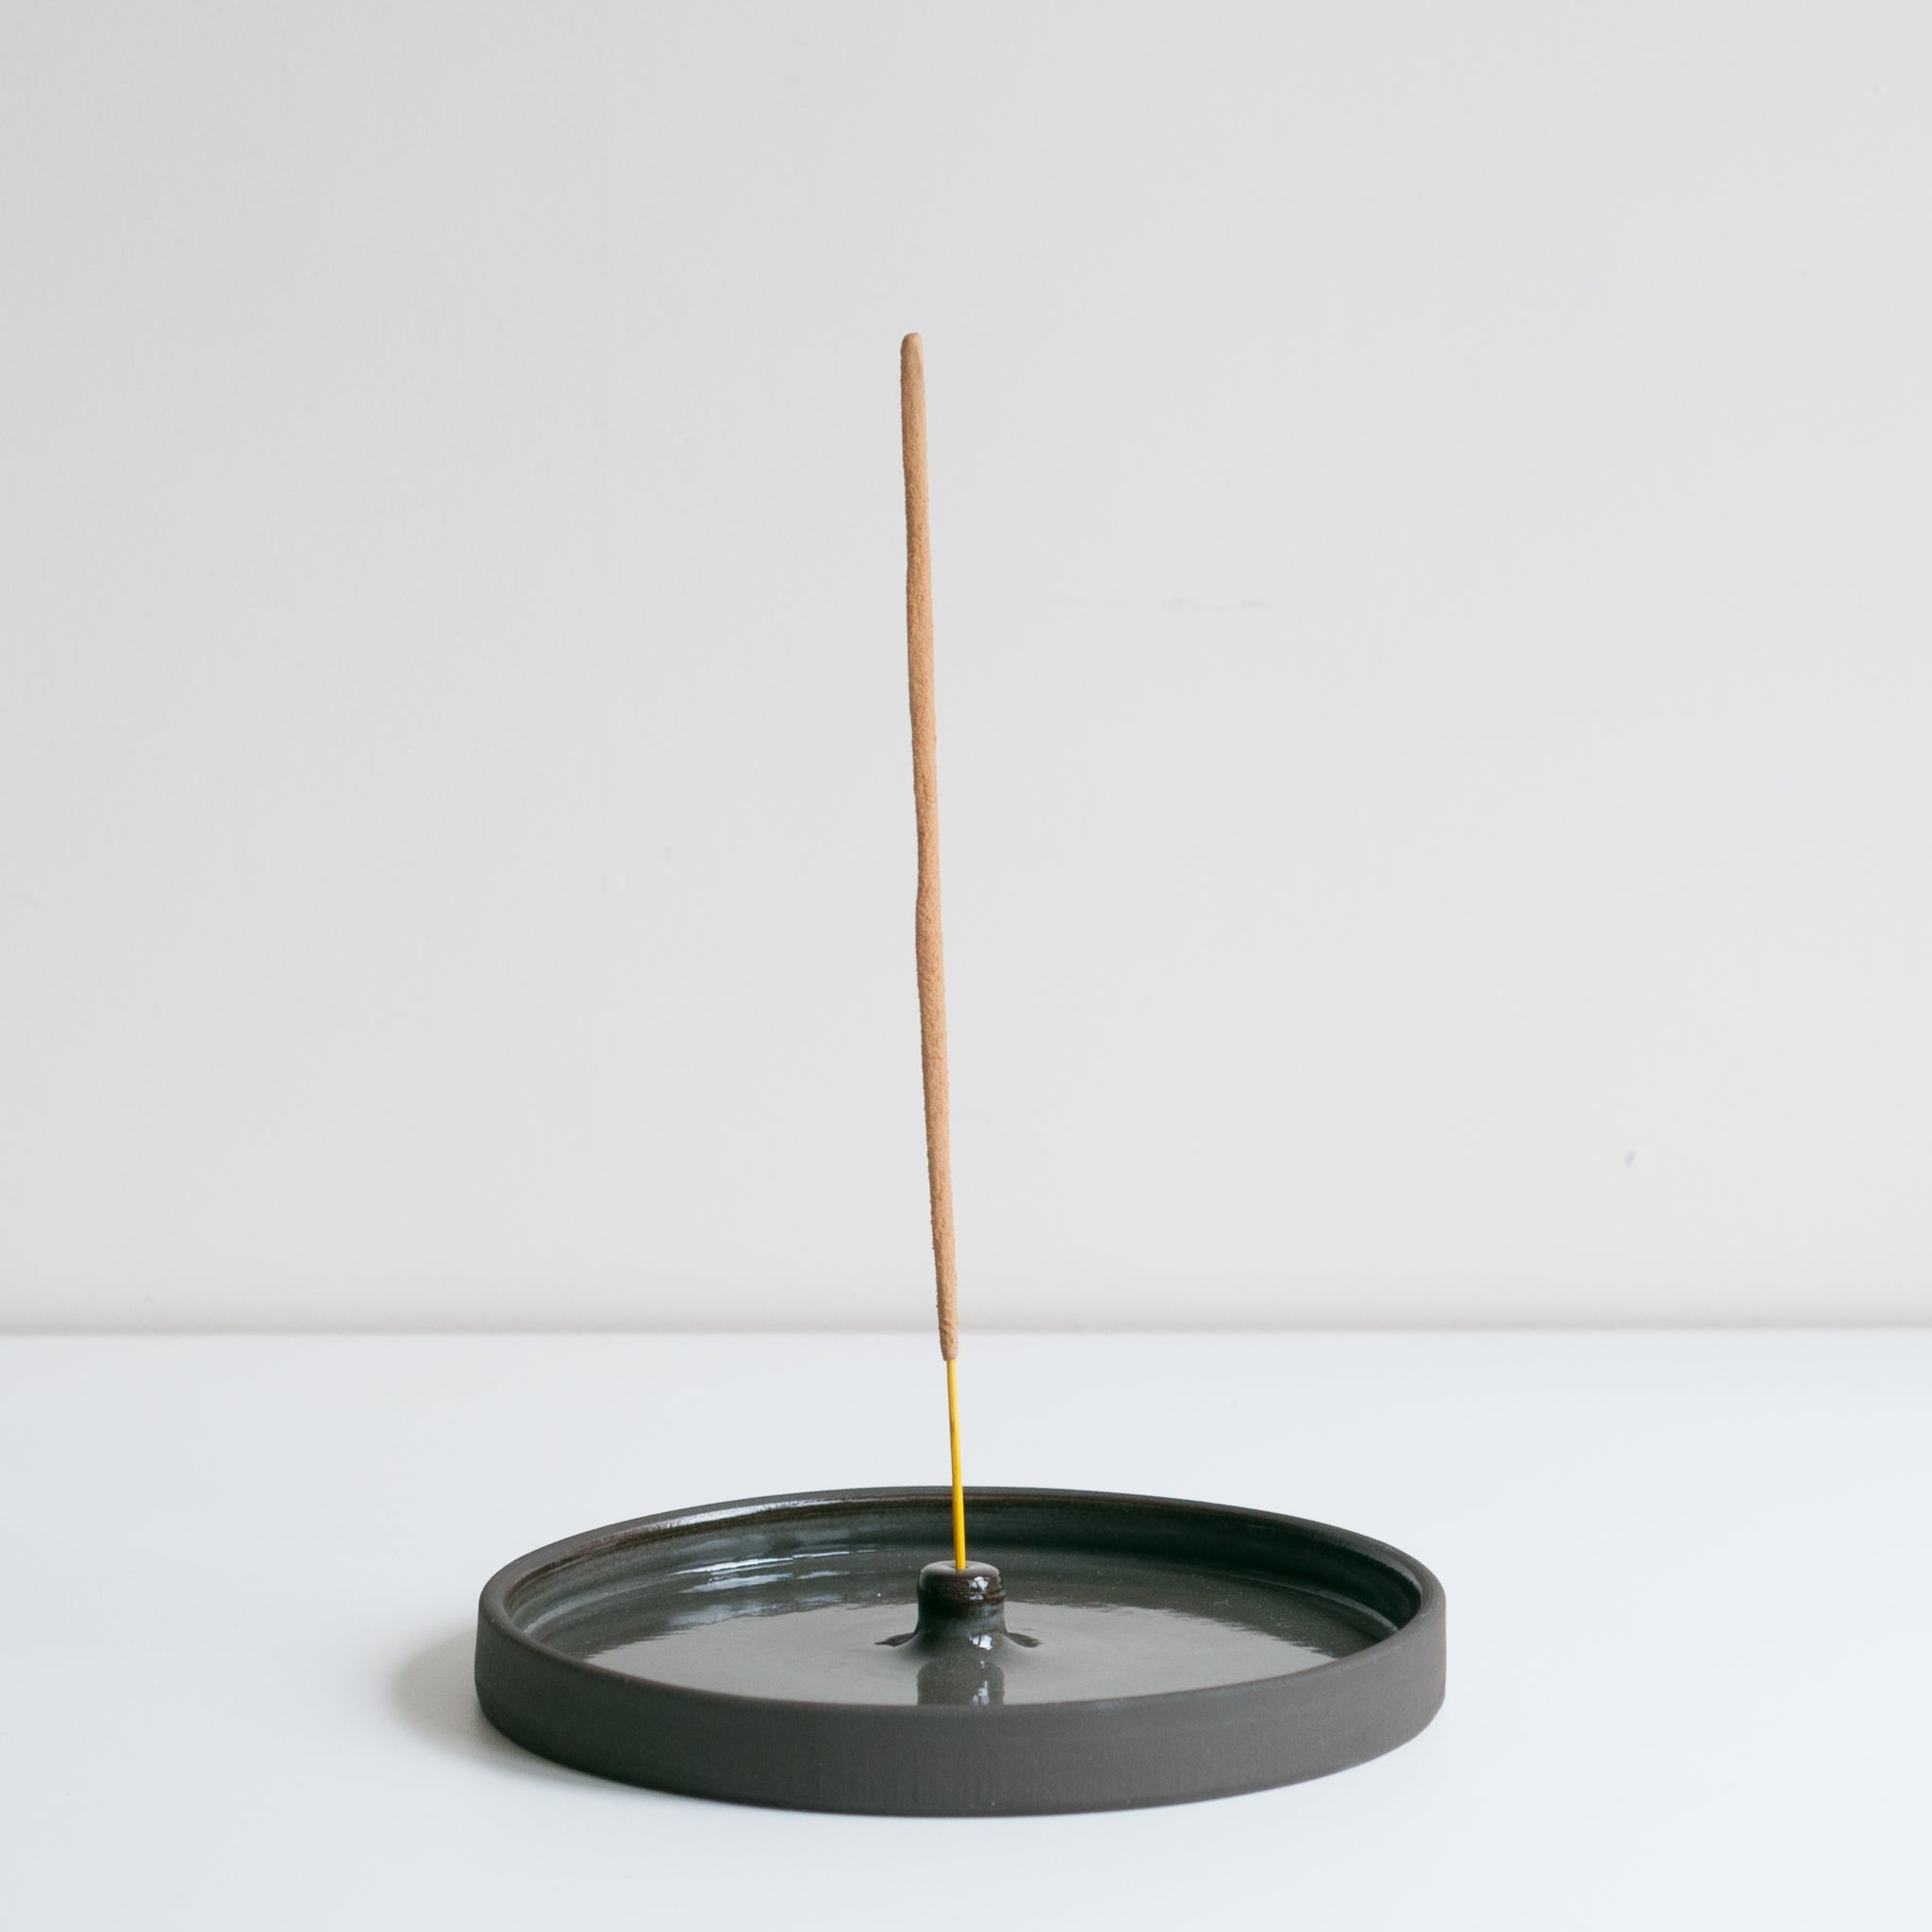 Incense Holder - Coal, Incense Holder - DOR & TAN | Contemporary Handmade Tableware